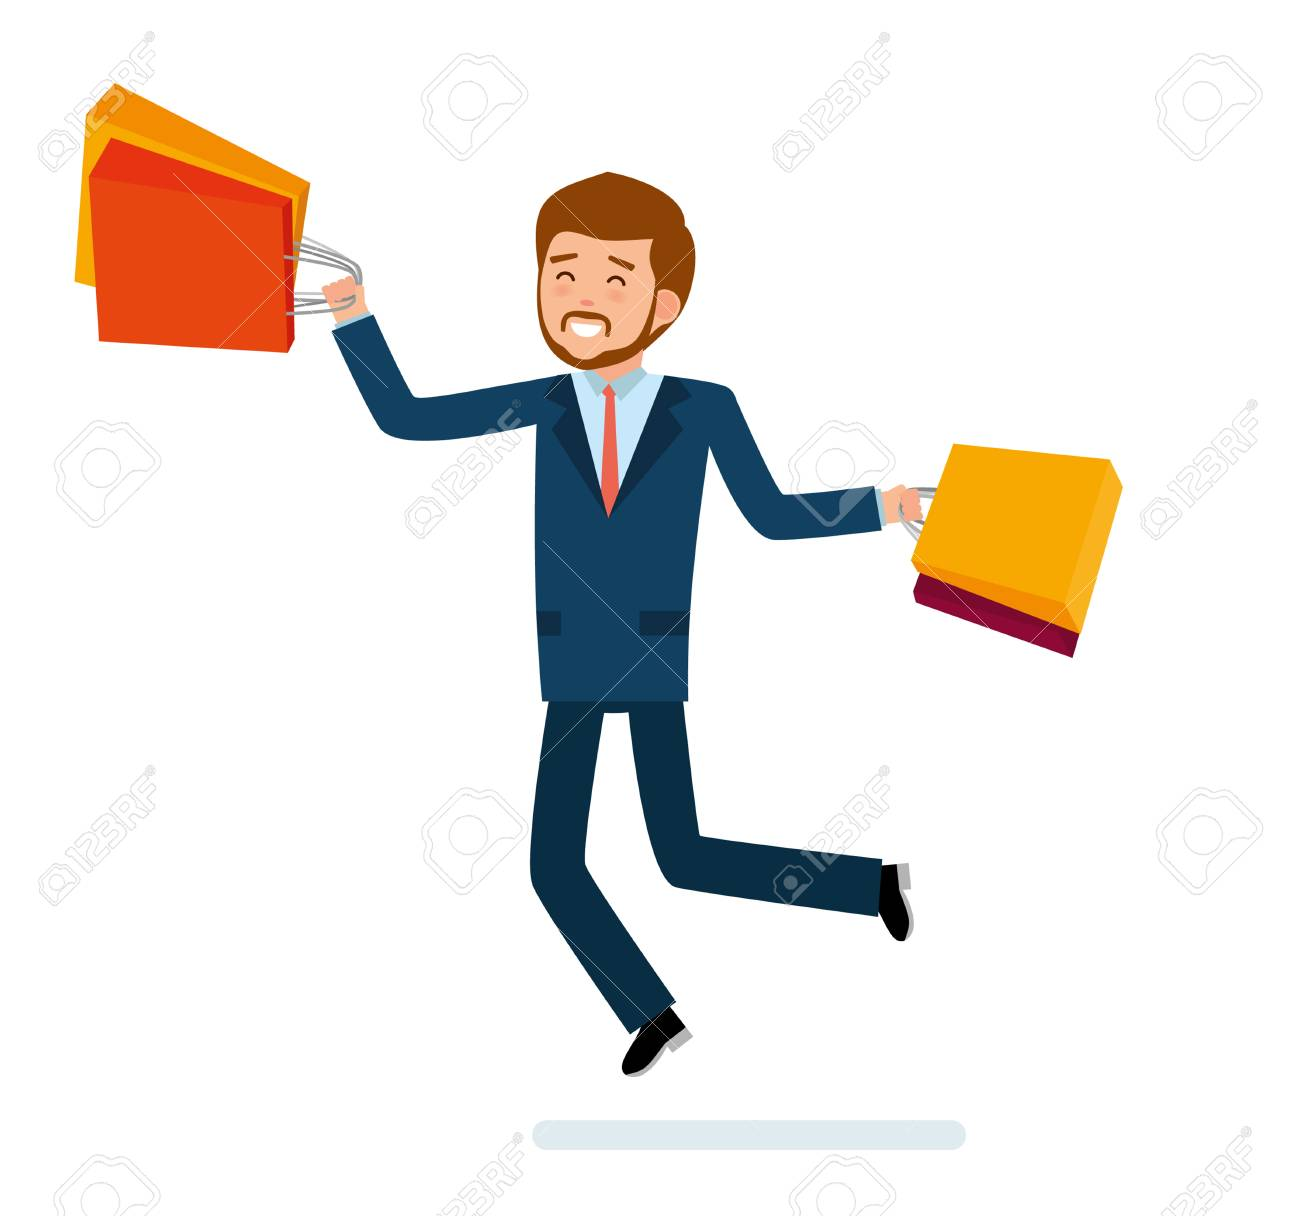 Dessin Shopping man in suit jumping for joy shopping in cartoon style illustration